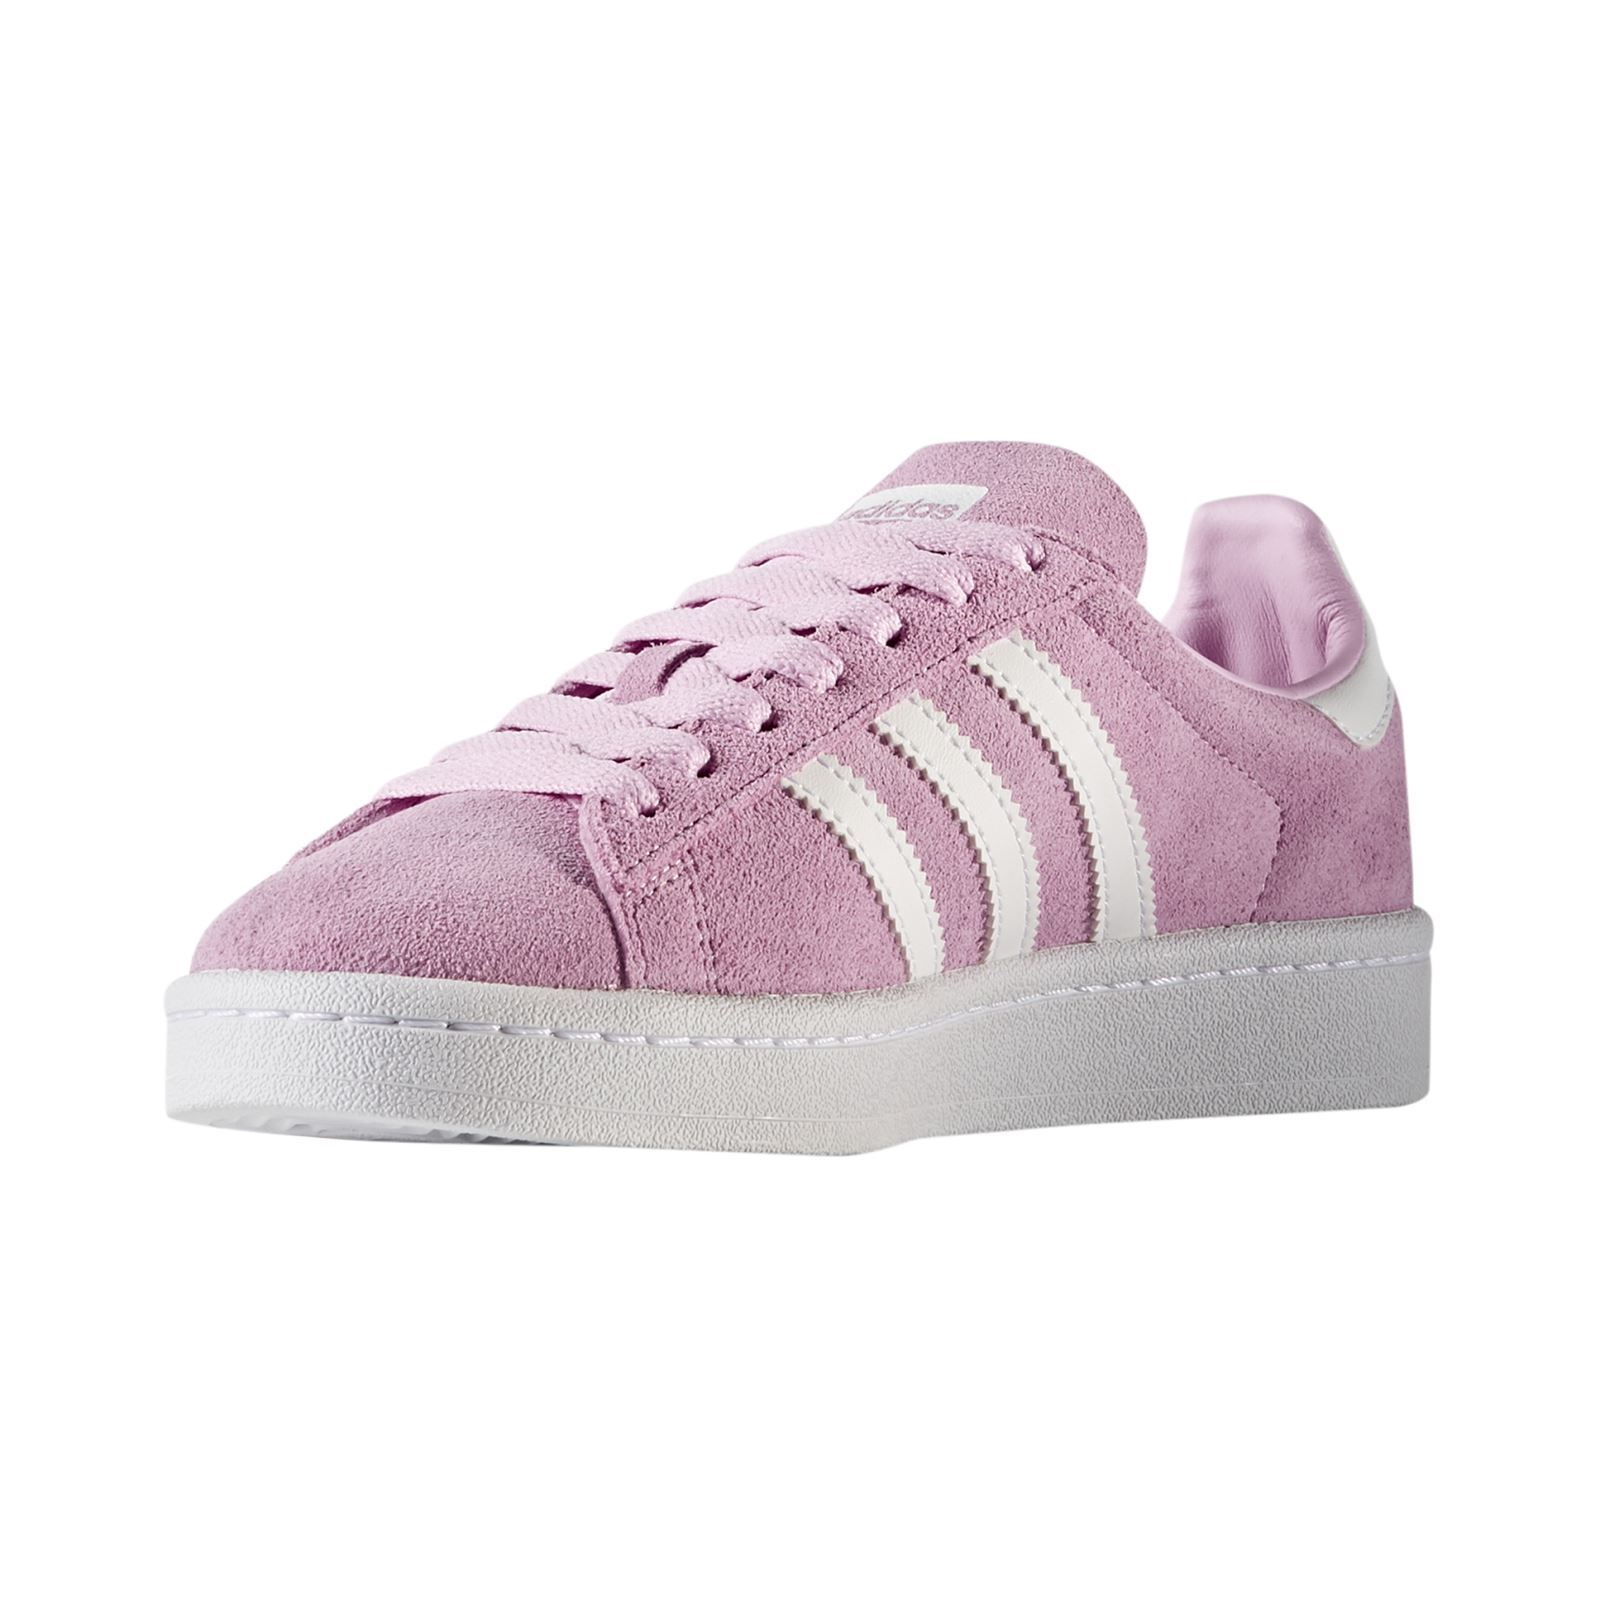 adidas originals campus sneakers mit lederanteil rosa. Black Bedroom Furniture Sets. Home Design Ideas